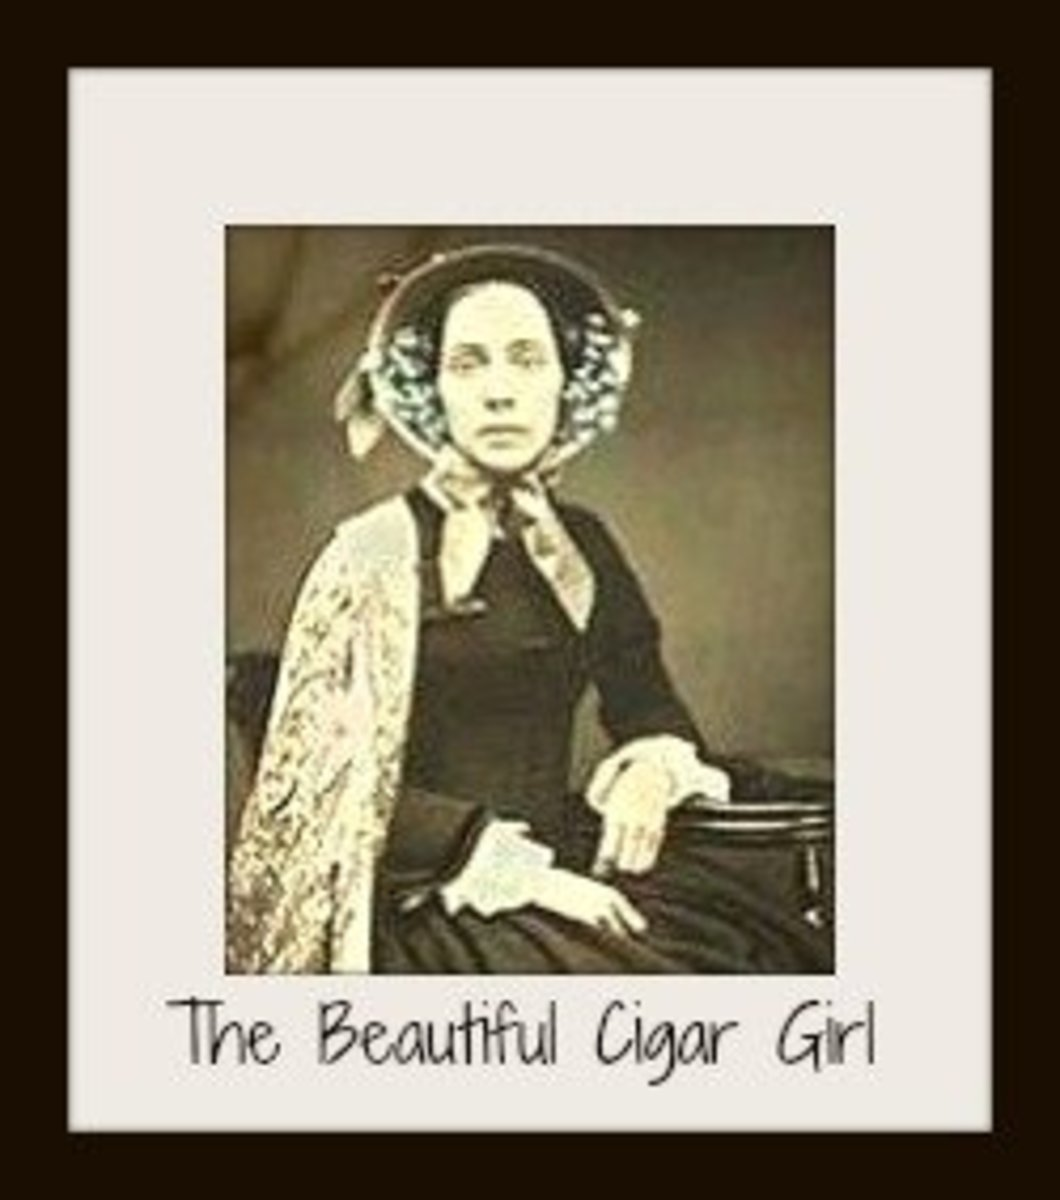 Death of the Beautiful Cigar Girl, Was Edgar Allan Poe the Murderer?